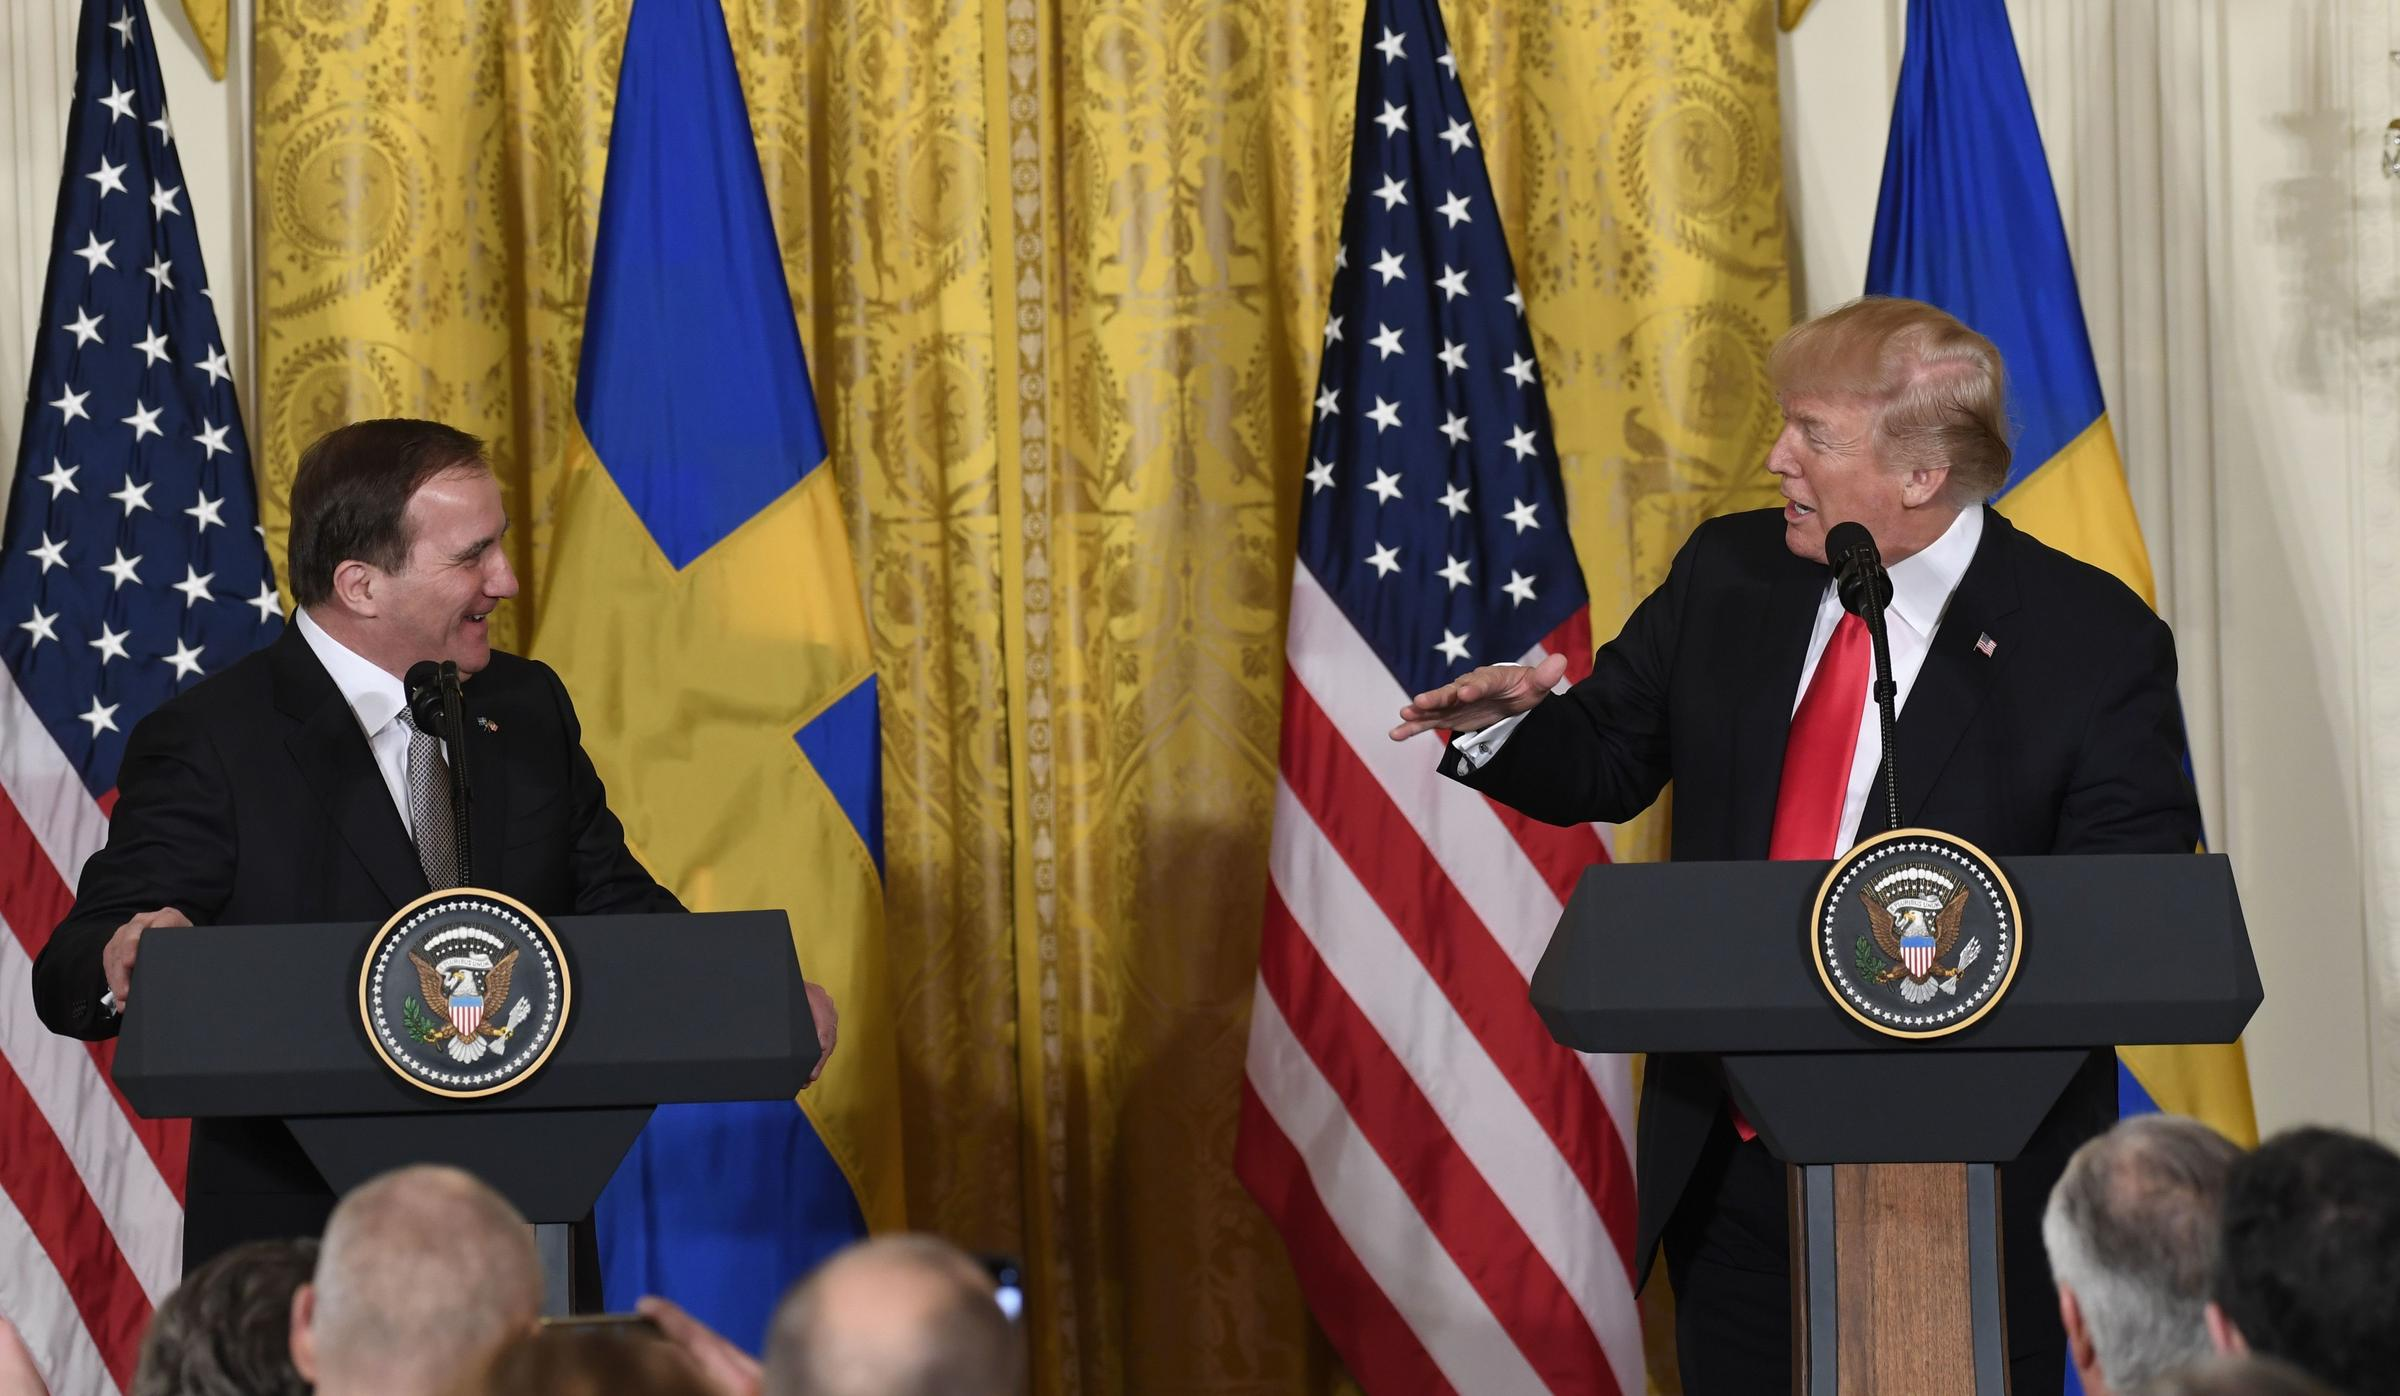 President Trump and Swedish Prime Minister Stefan Löfven hold a joint press conference at the White House on Tuesday